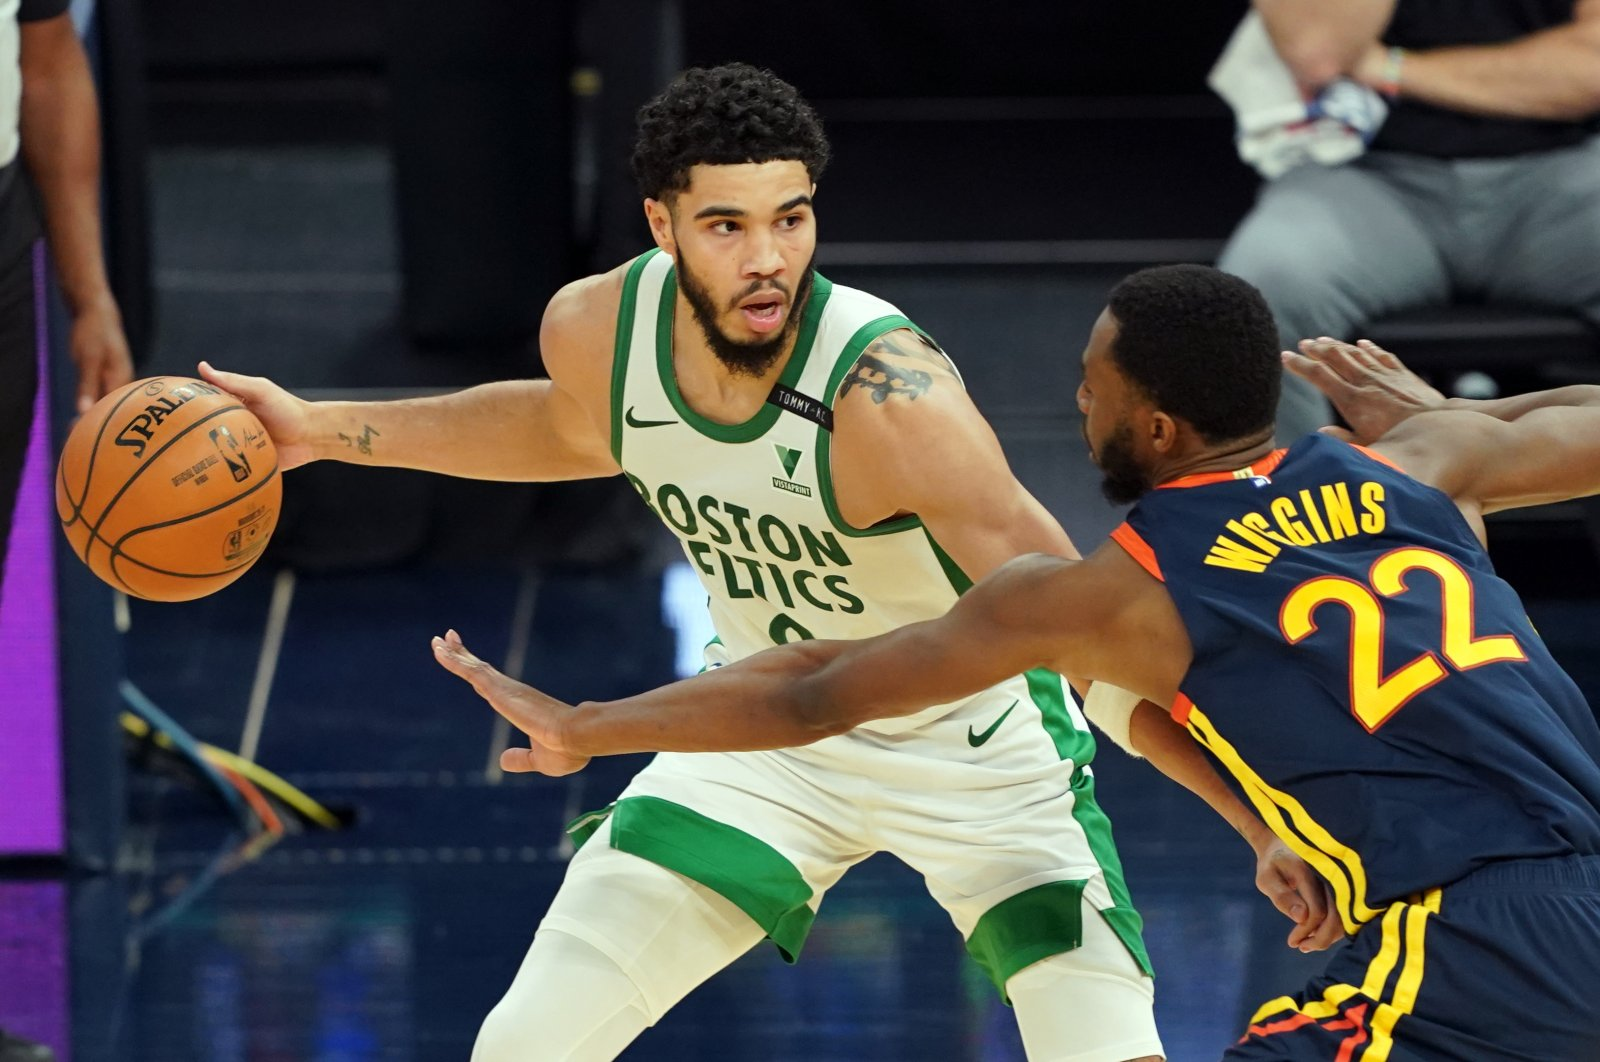 Boston Celtics forward Jayson Tatum (L) handles the ball while being defended by Golden State Warriors forward Andrew Wiggins (R) during the third quarter at Chase Center, San Francisco, California, U.S., Feb. 2, 2021. (Reuters Photo)